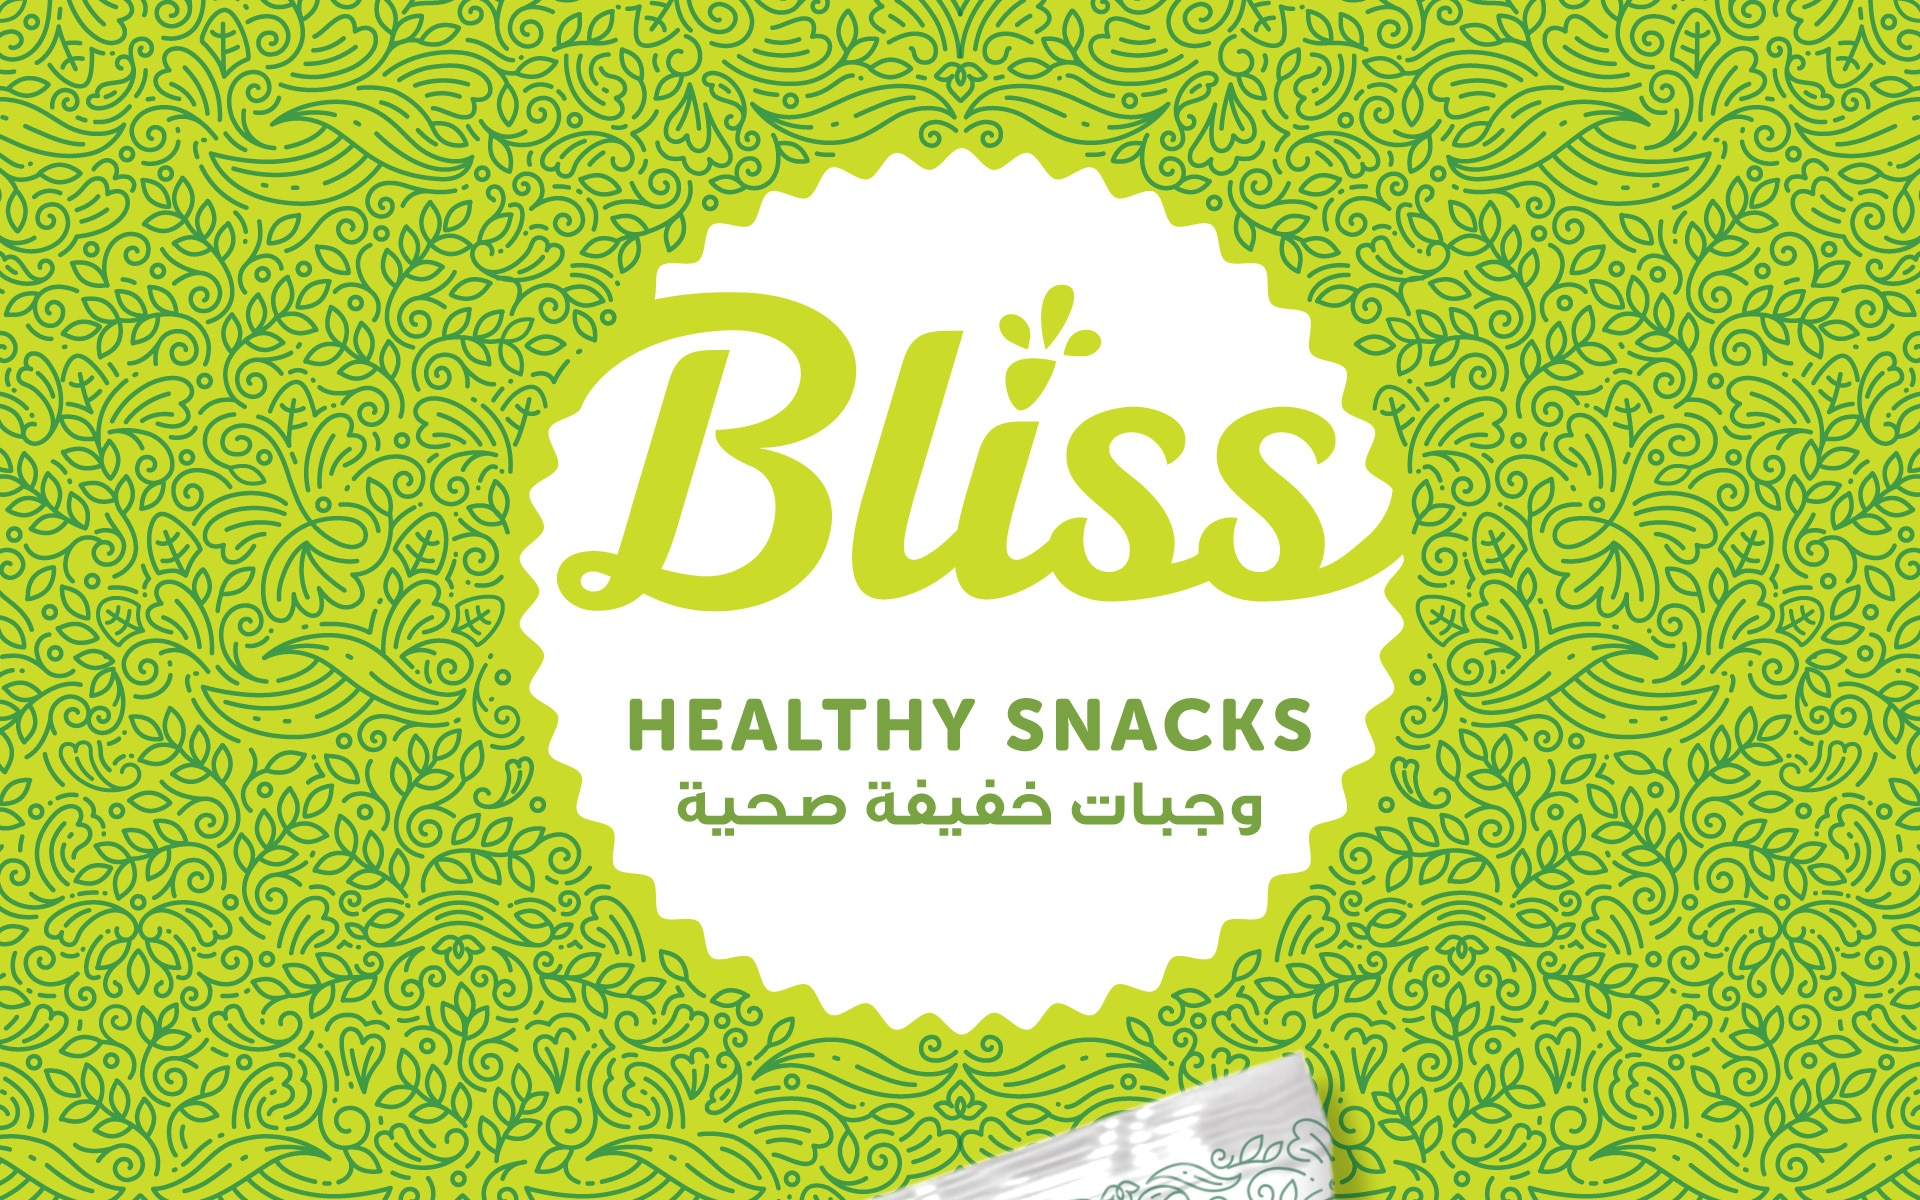 Kitco Bliss - Brand Identity